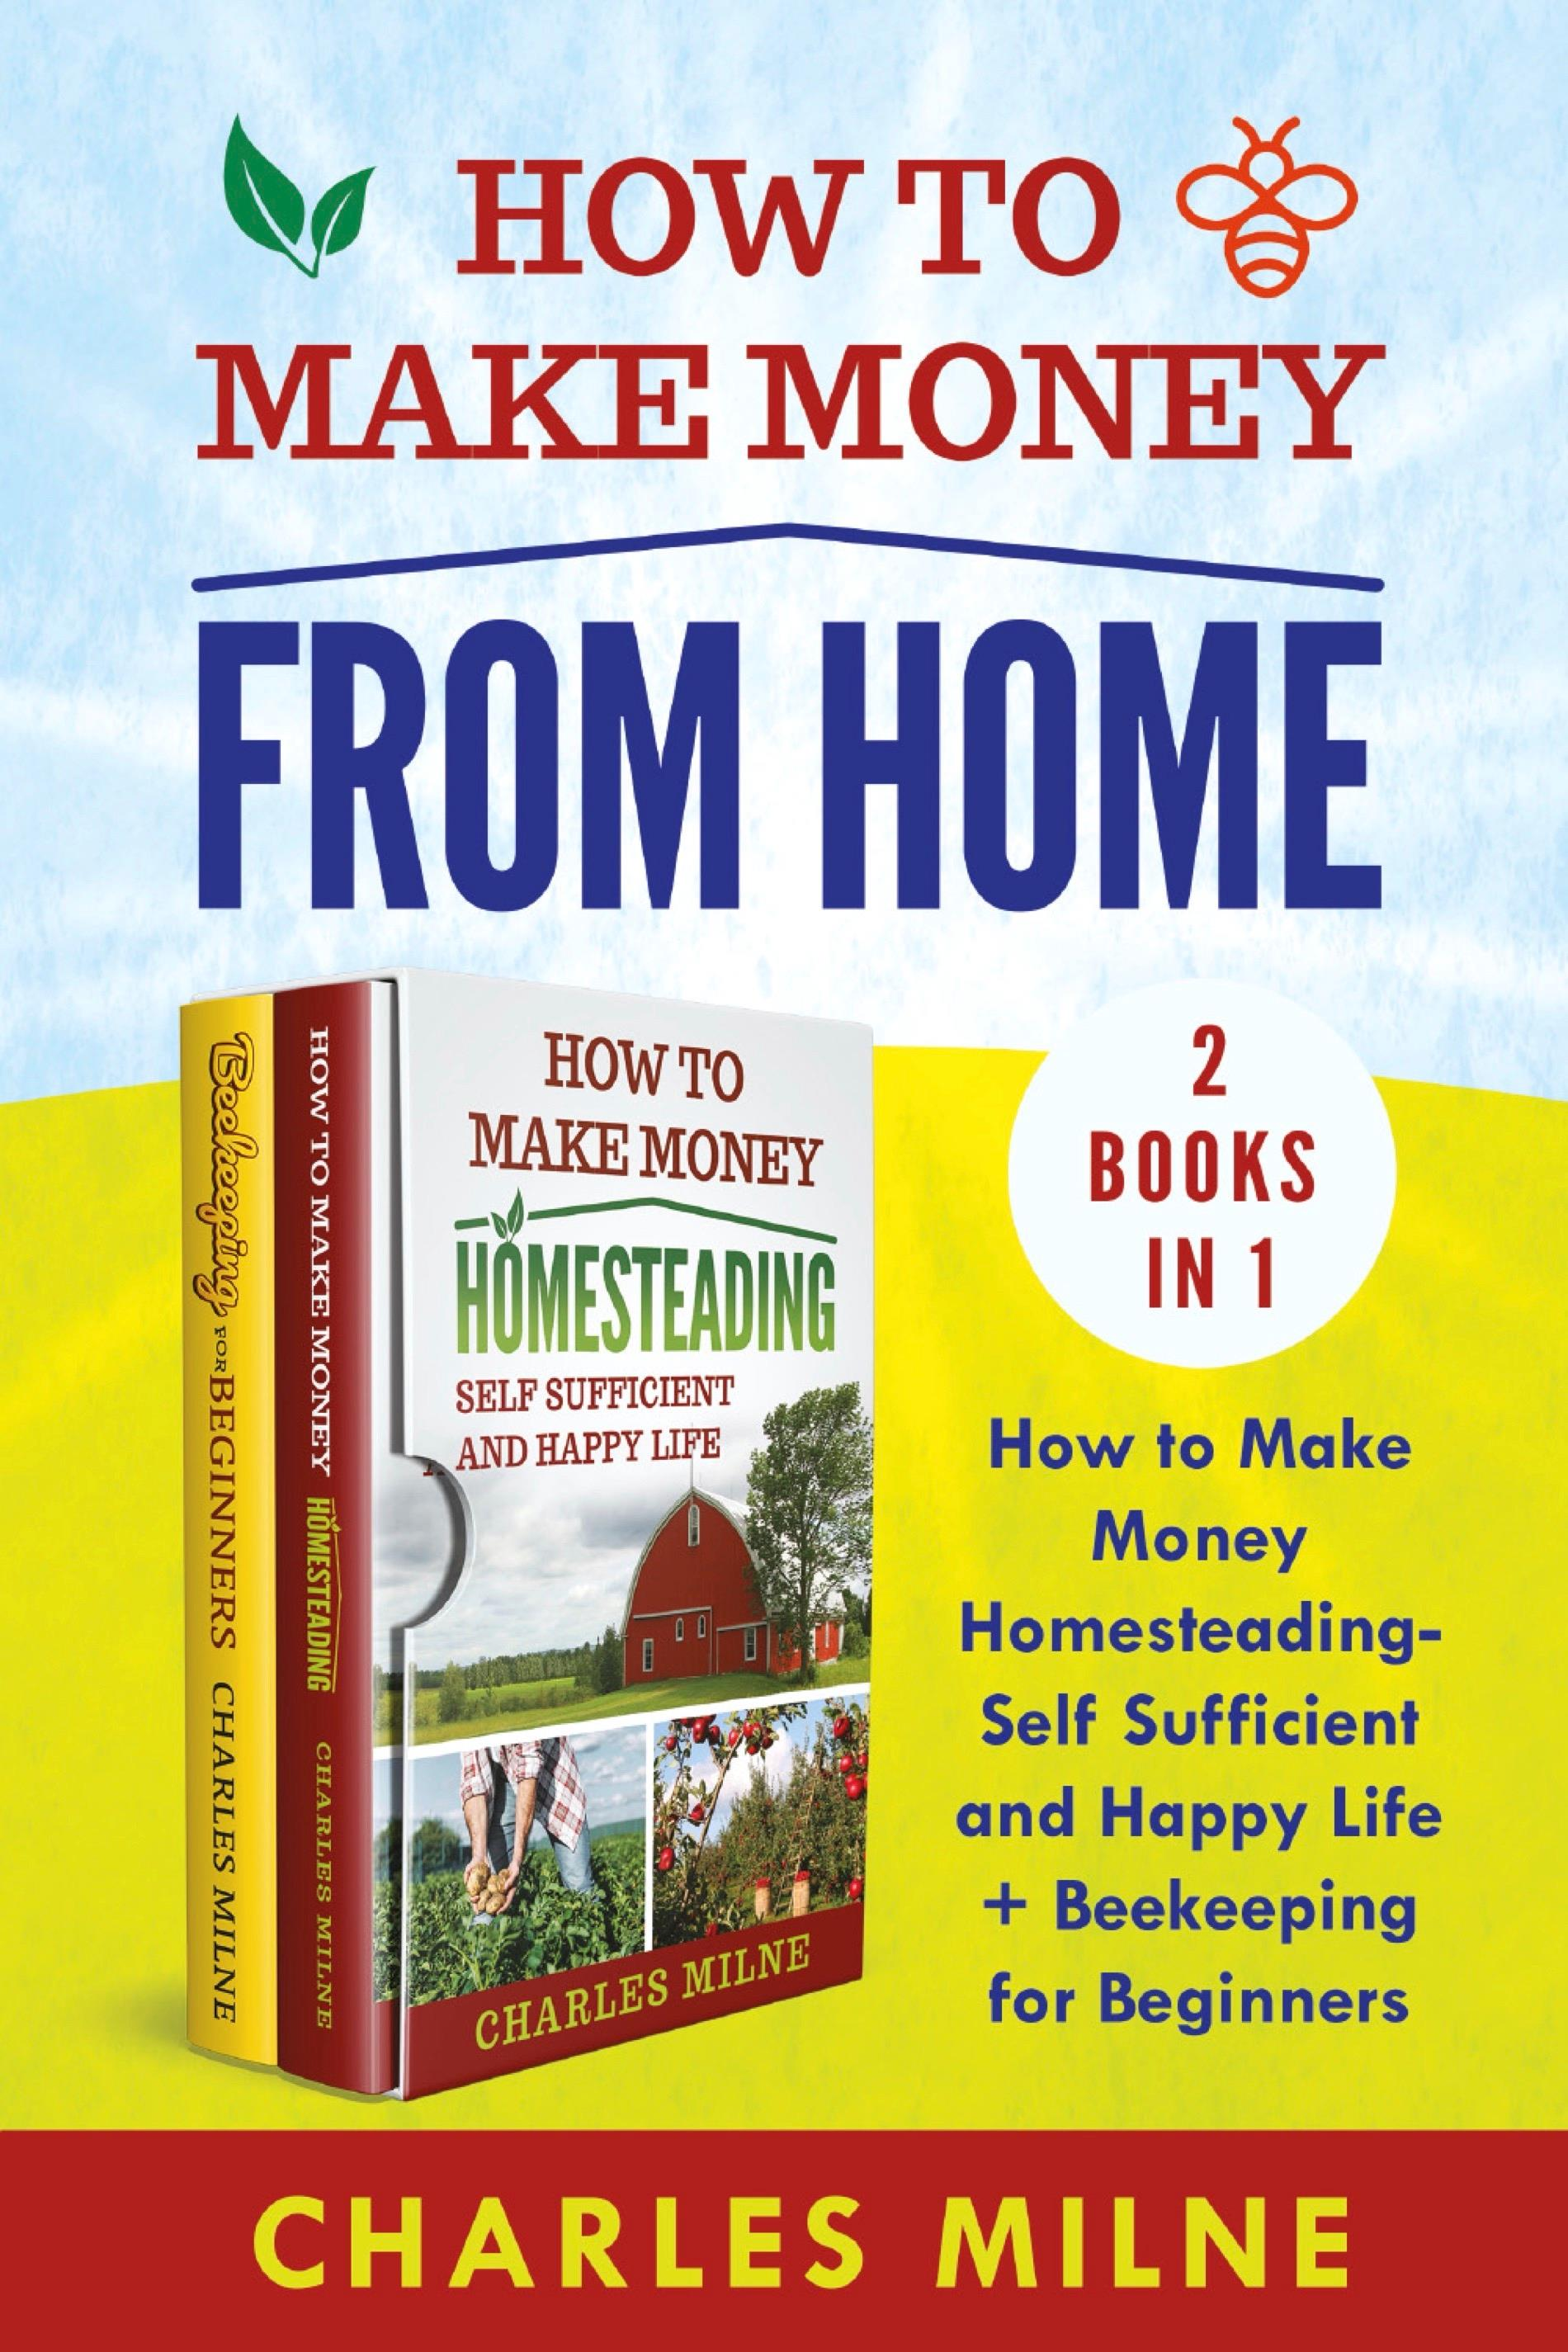 How to Make Money from Home (2 Books in 1). How to Make Money Homesteading-Self Sufficient and Happy Life + Beekeeping for Beginners